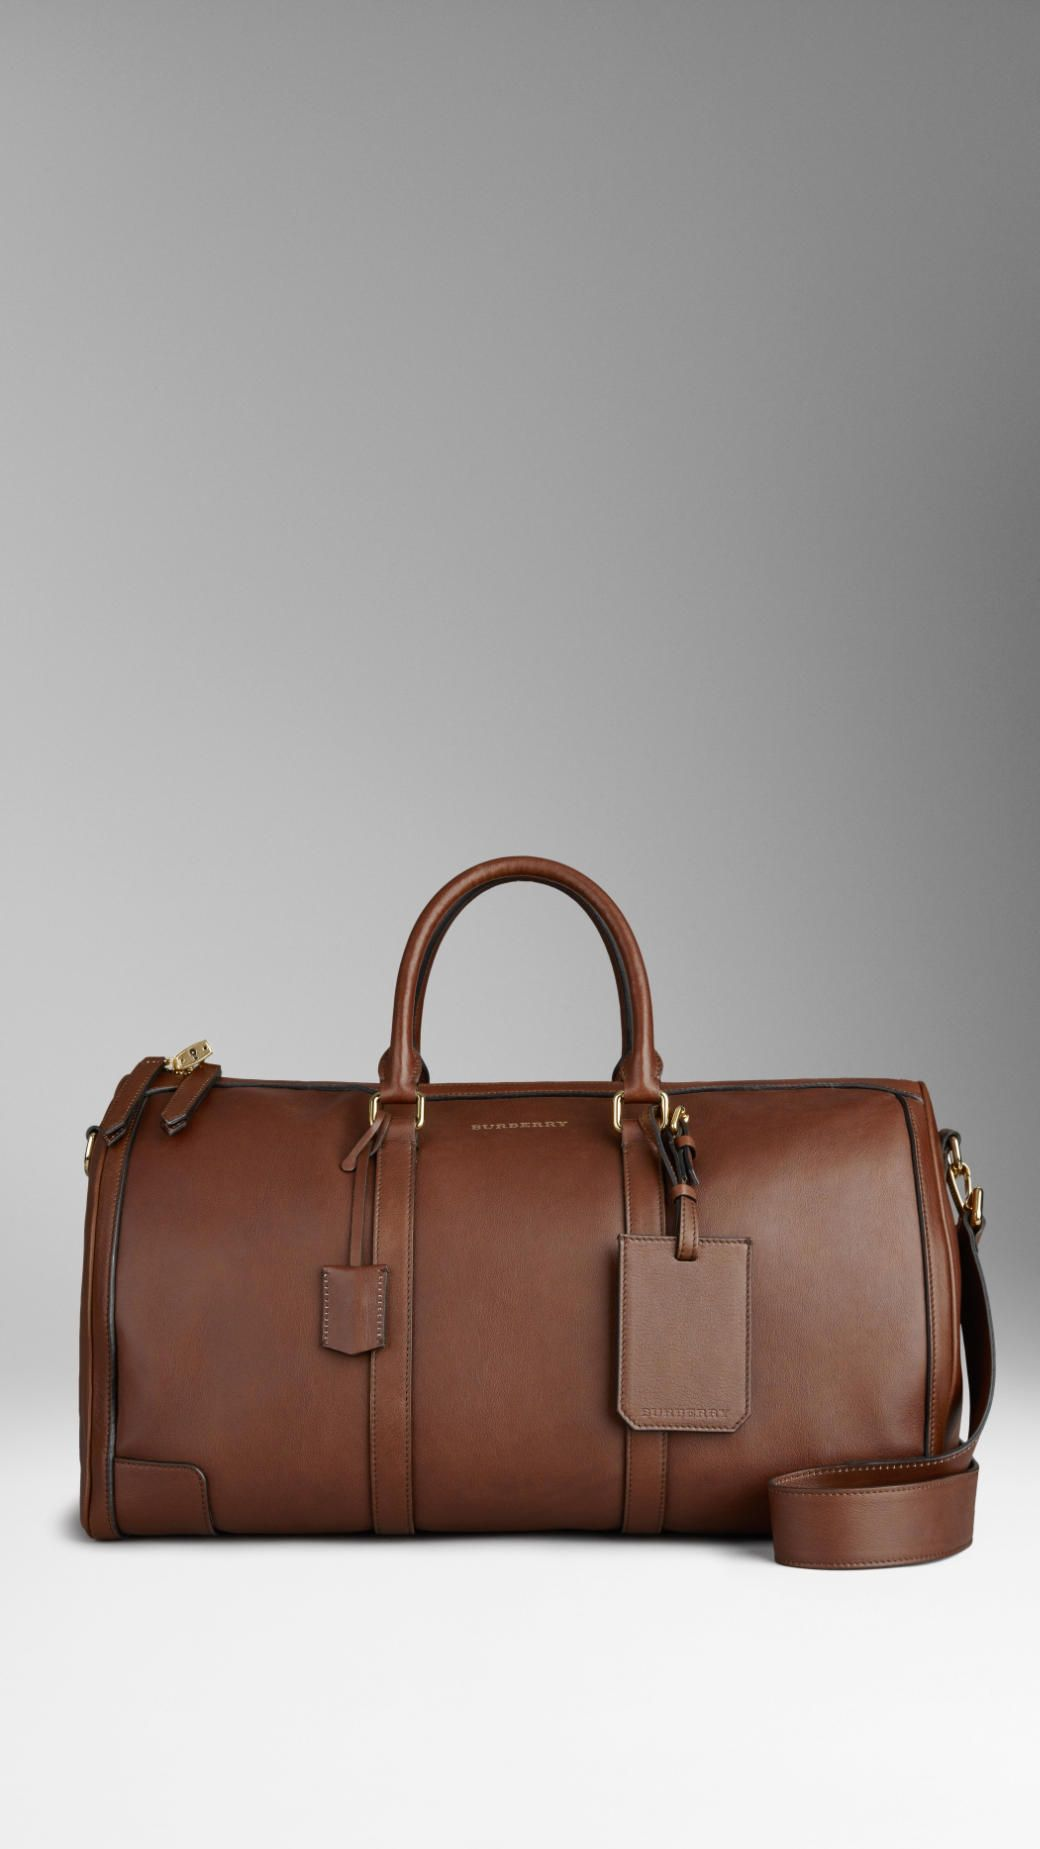 981a918981bd The Large Alchester in Sartorial Leather   Burberry   Men Bags   Sac ...